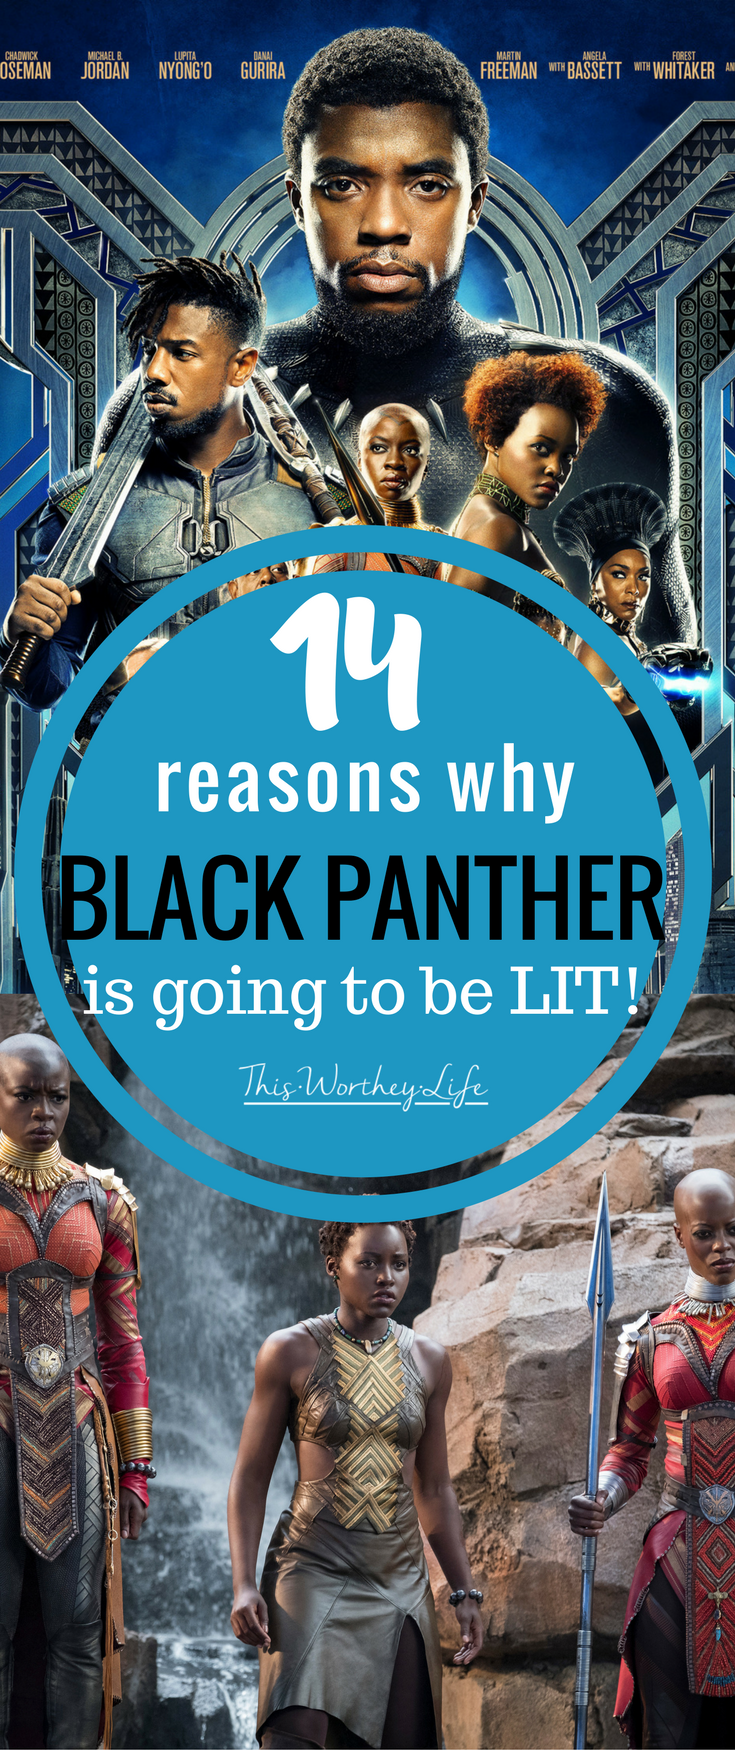 Black Panther drops in theaters next month. With all the news and excitement about Marvel's newest film, I'm sharing my feelings and thoughts about why Black Panther is going to be LIT, and I haven't even seen the movie!